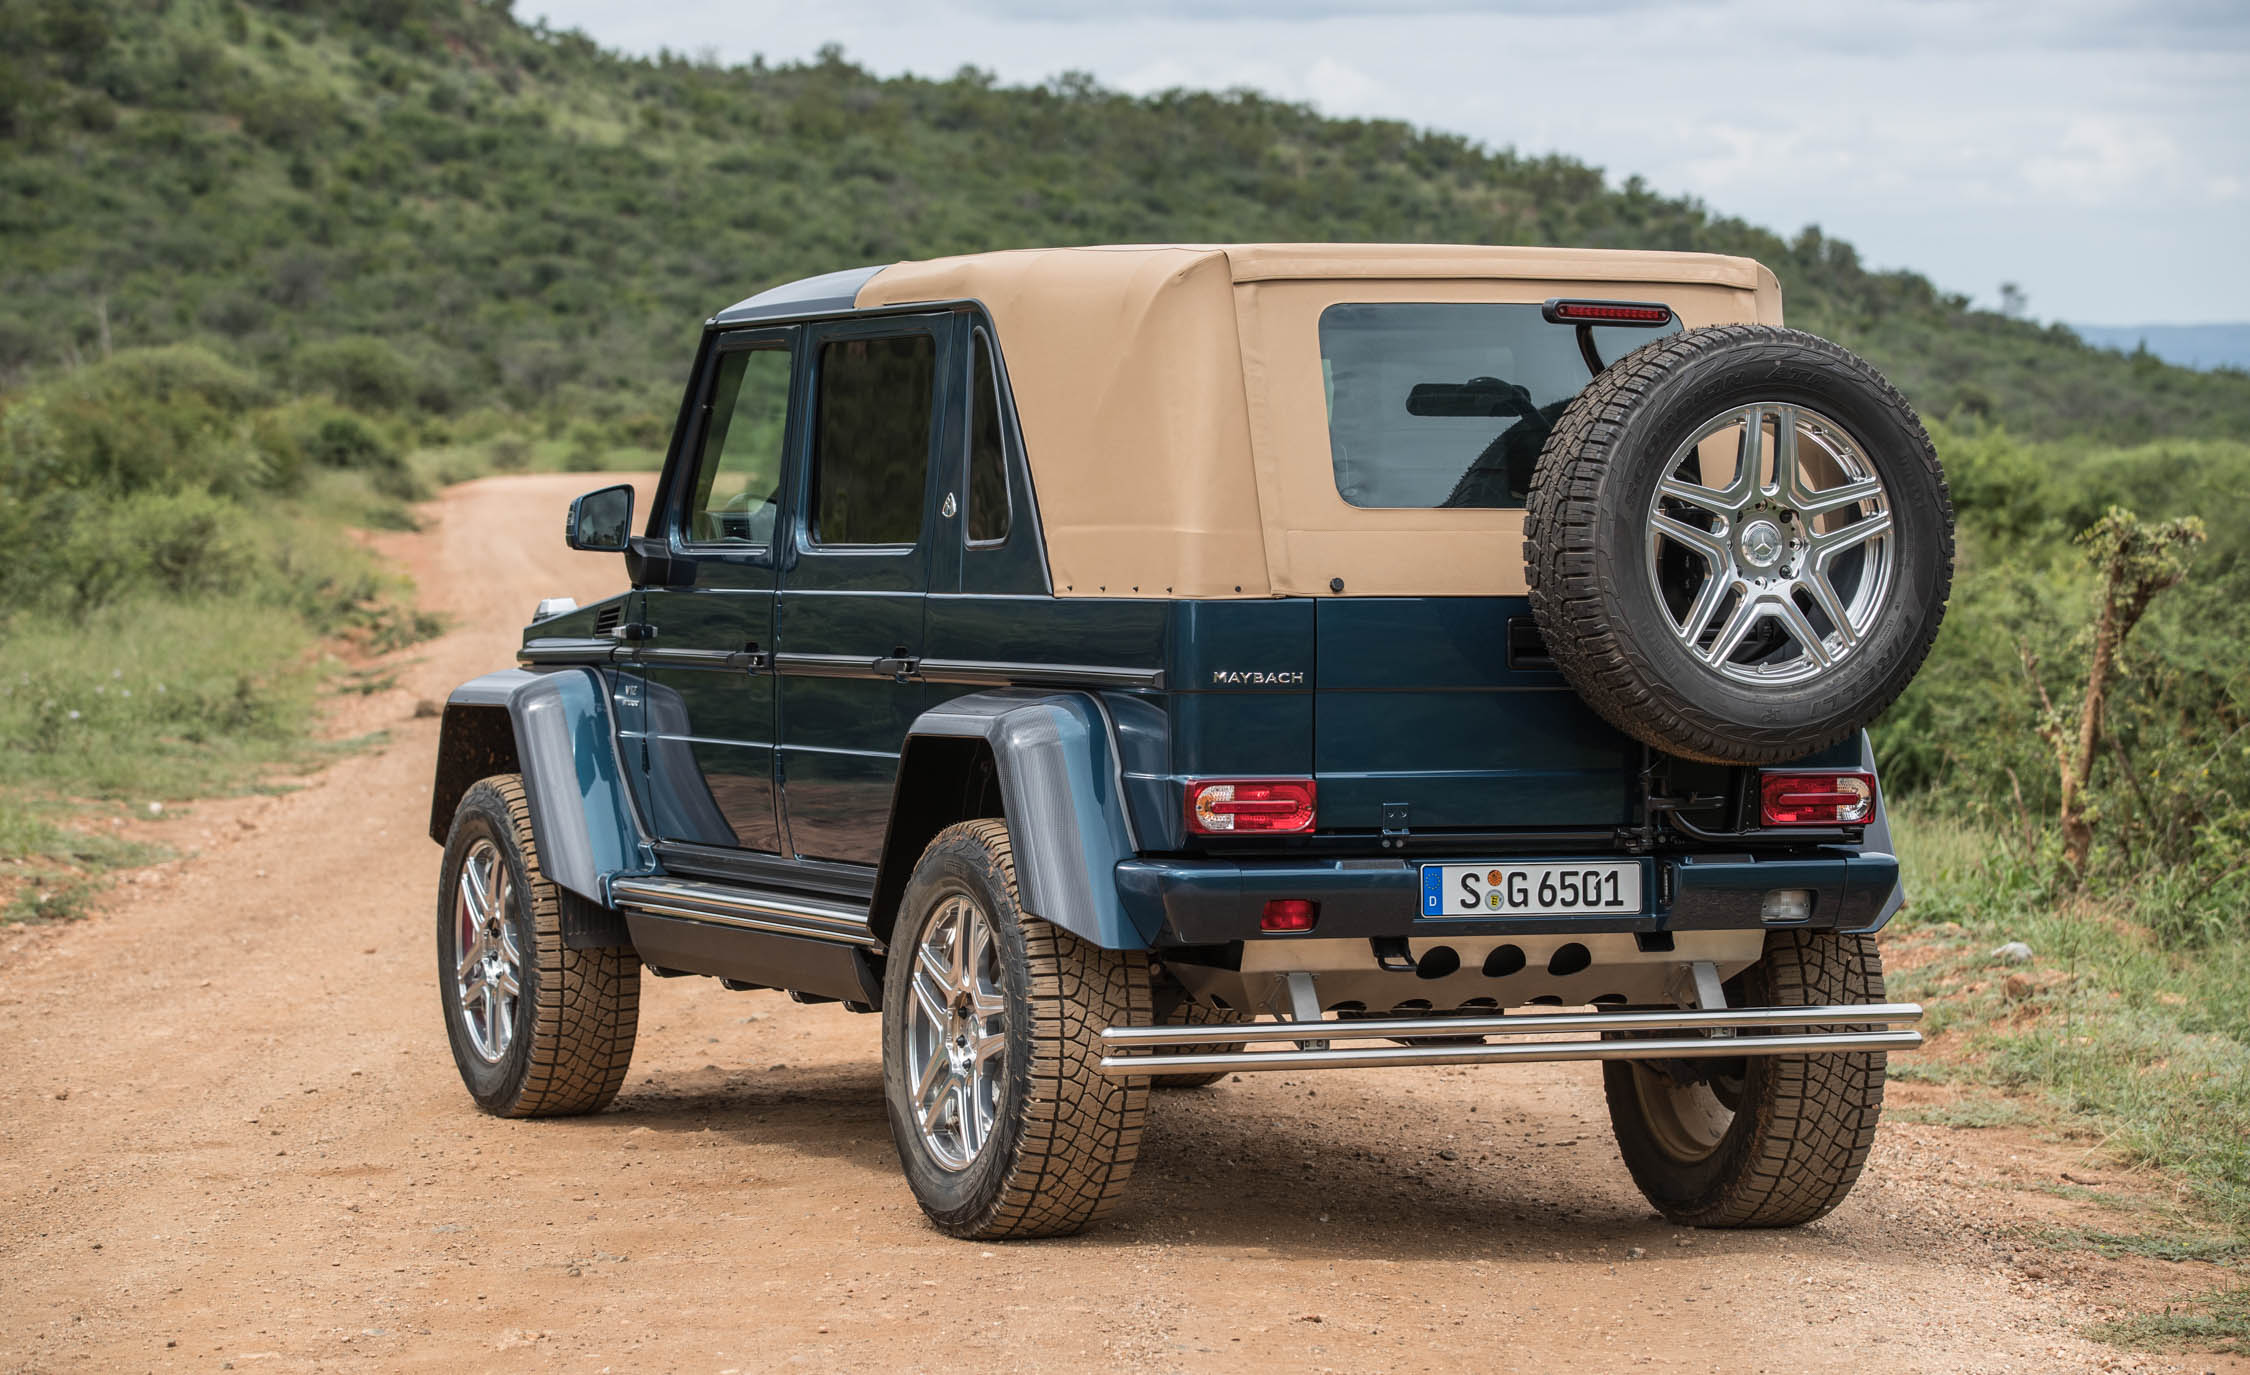 2018 Mercedes Maybach G650 Landaulet Exterior Side And Rear (Photo 45 of 52)